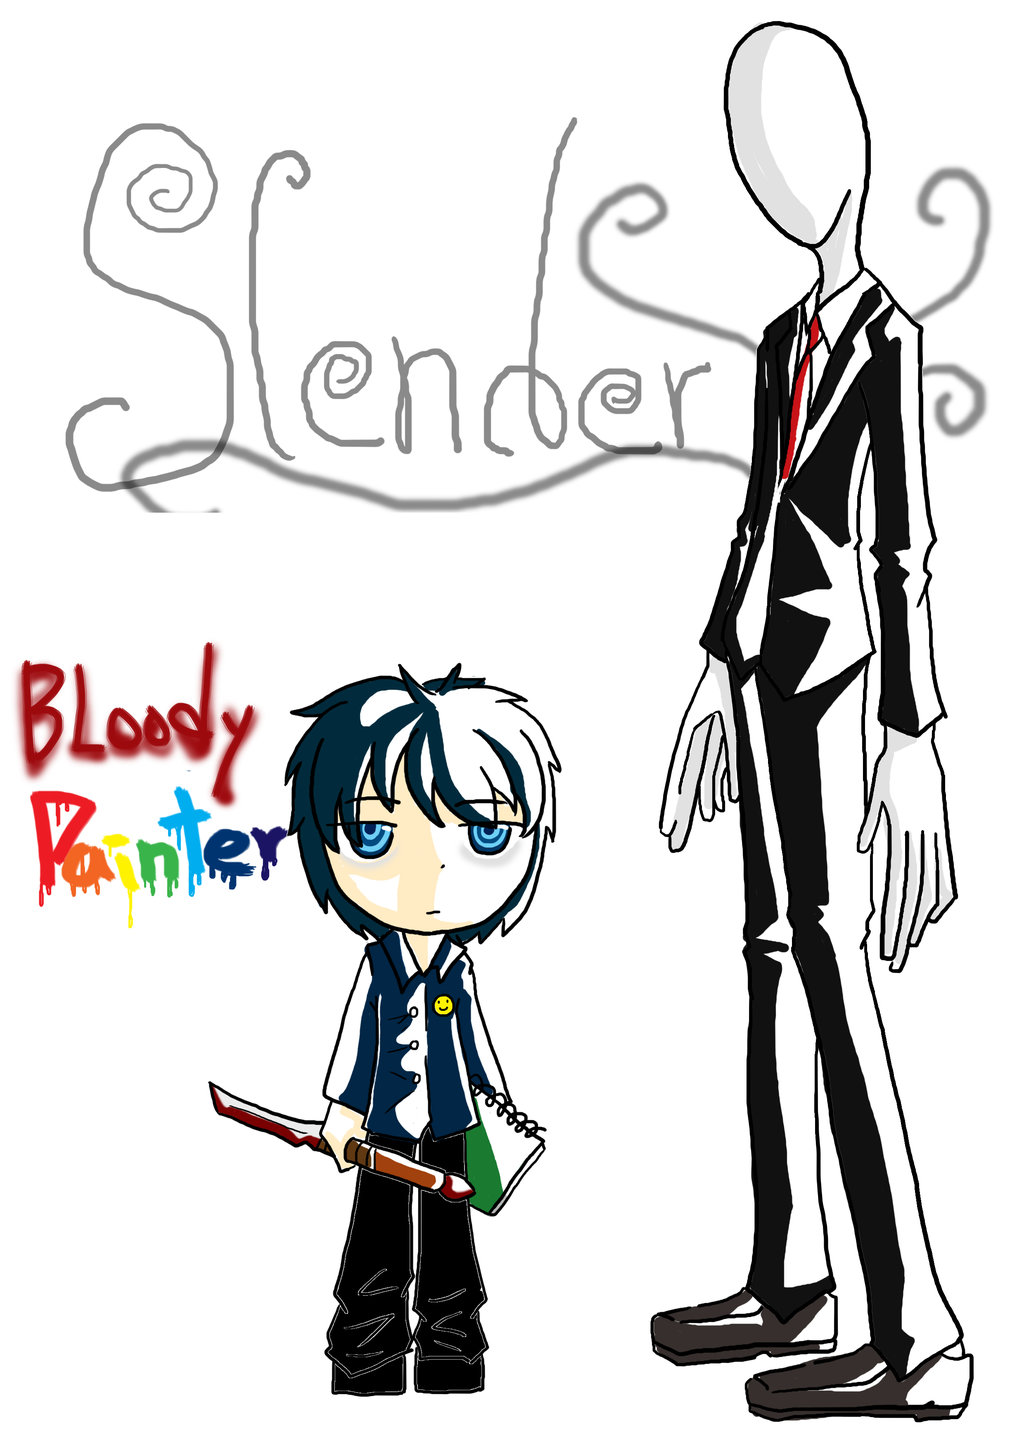 Slender Man clipart bloody Bloody  Slender ladynulight and